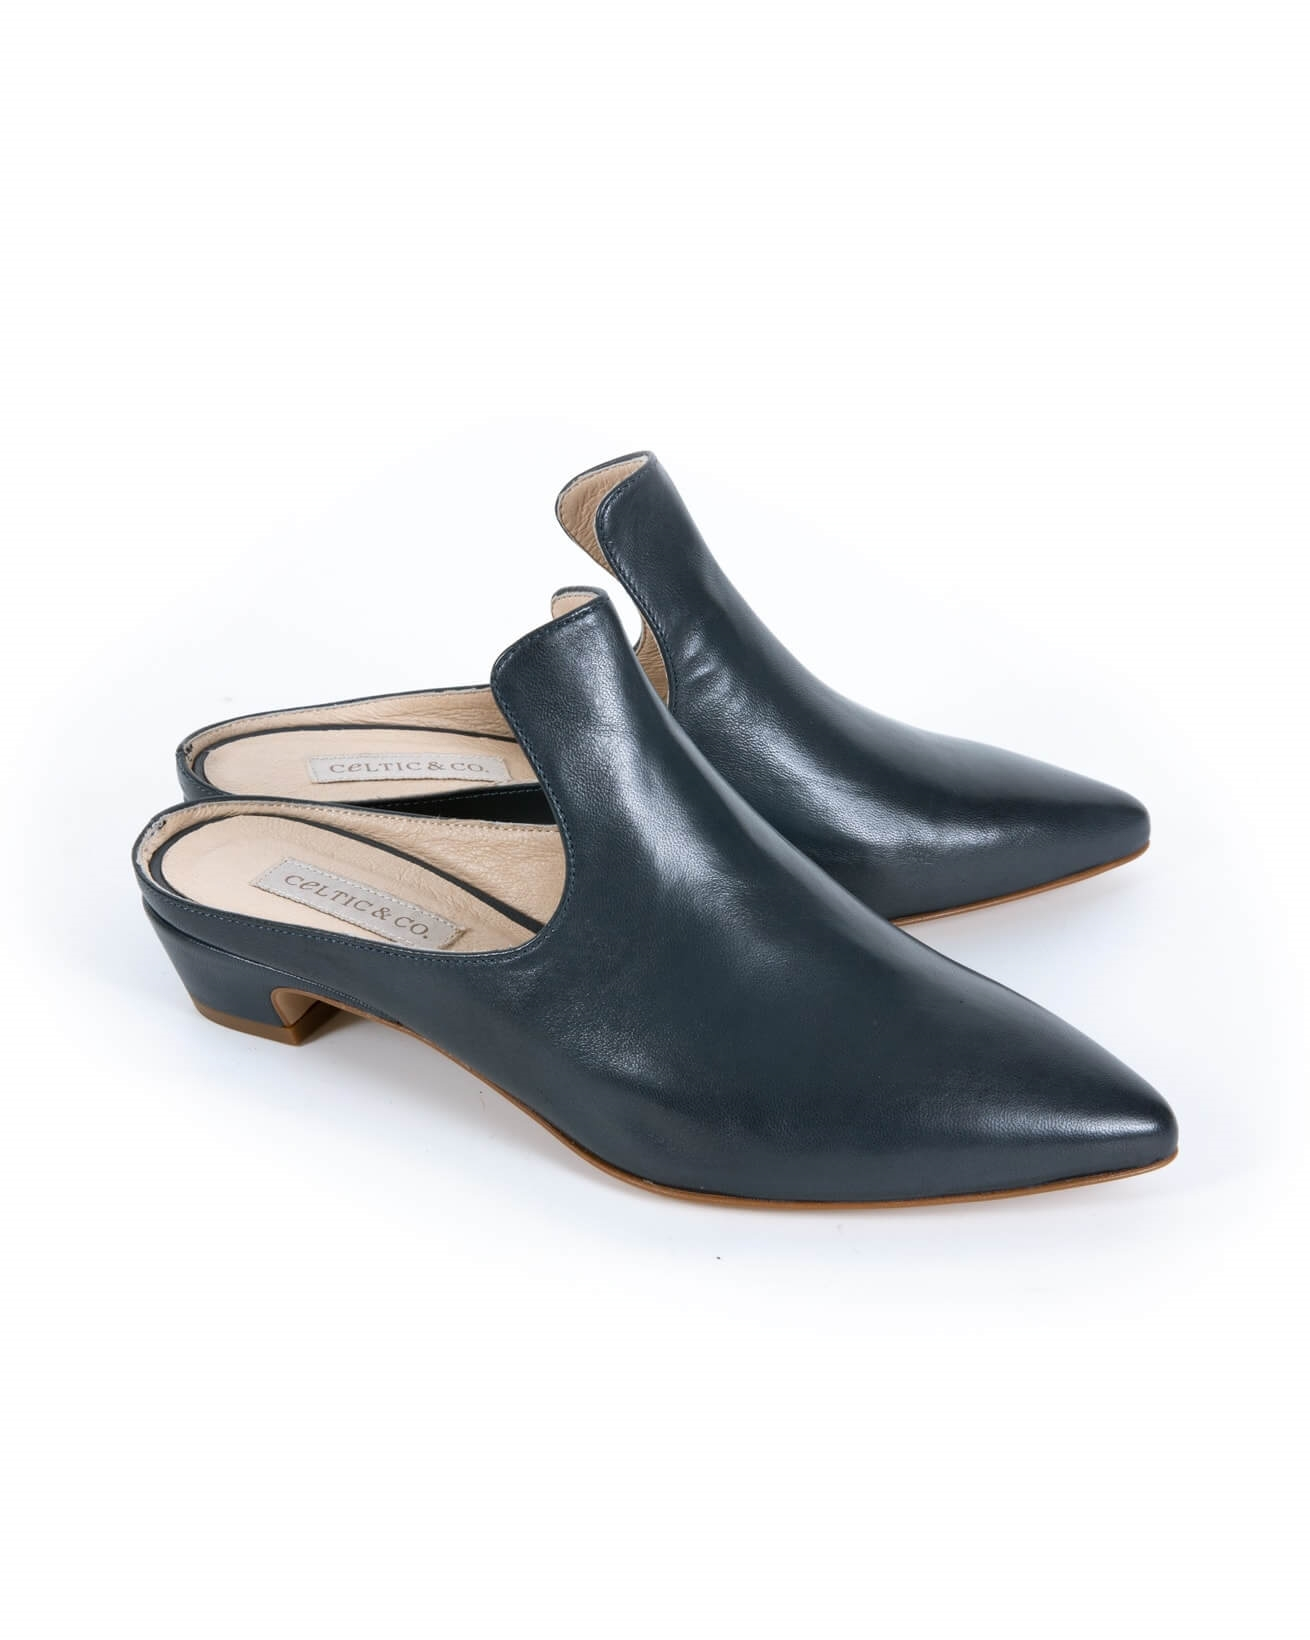 7580_heeled mules_navy_pair_comp.jpg